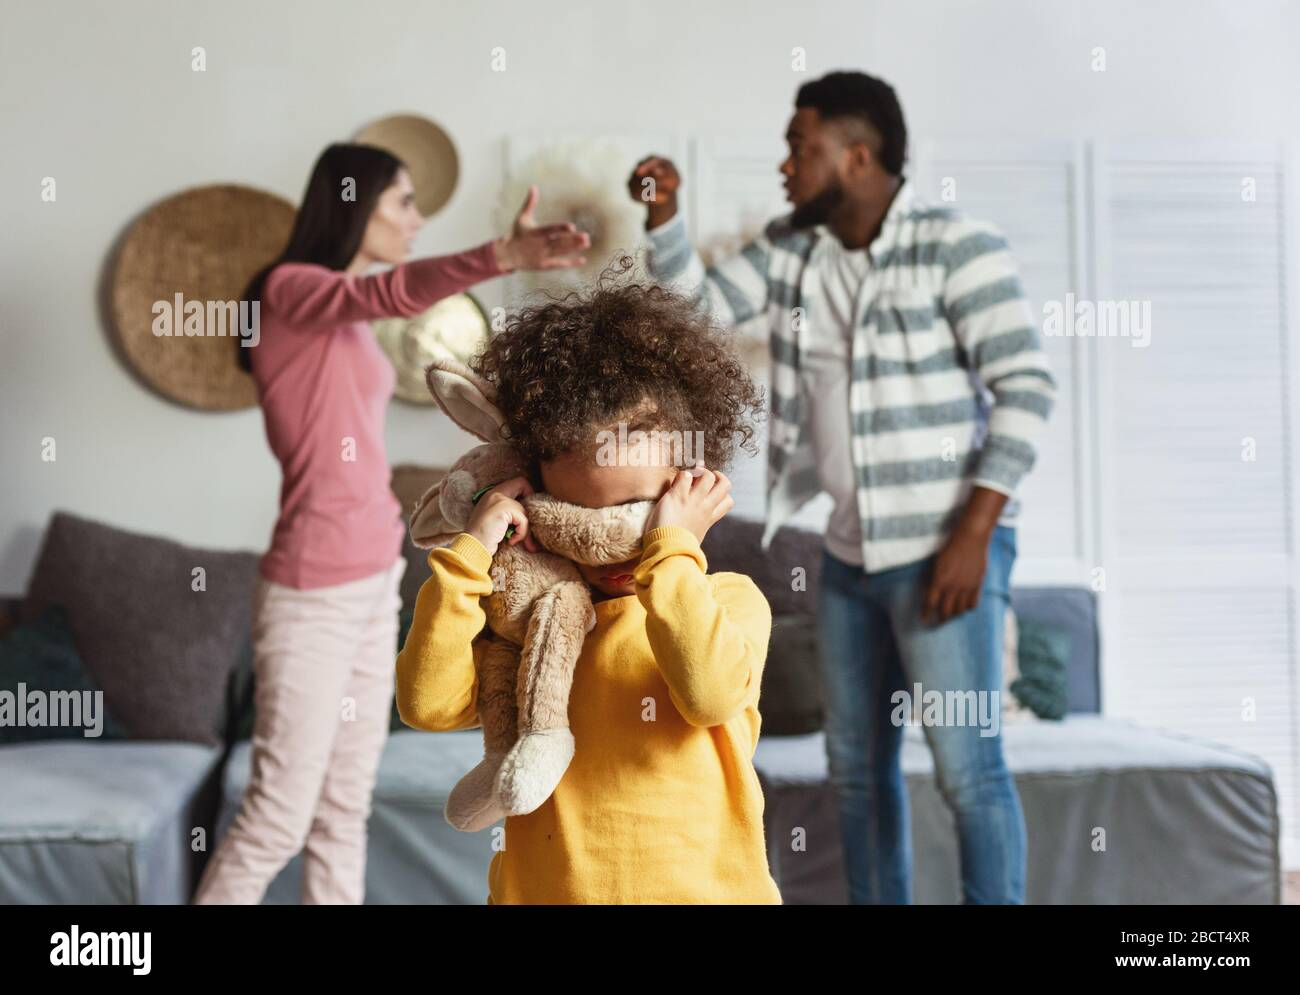 Baby cries when international parents are quarrel Stock Photo